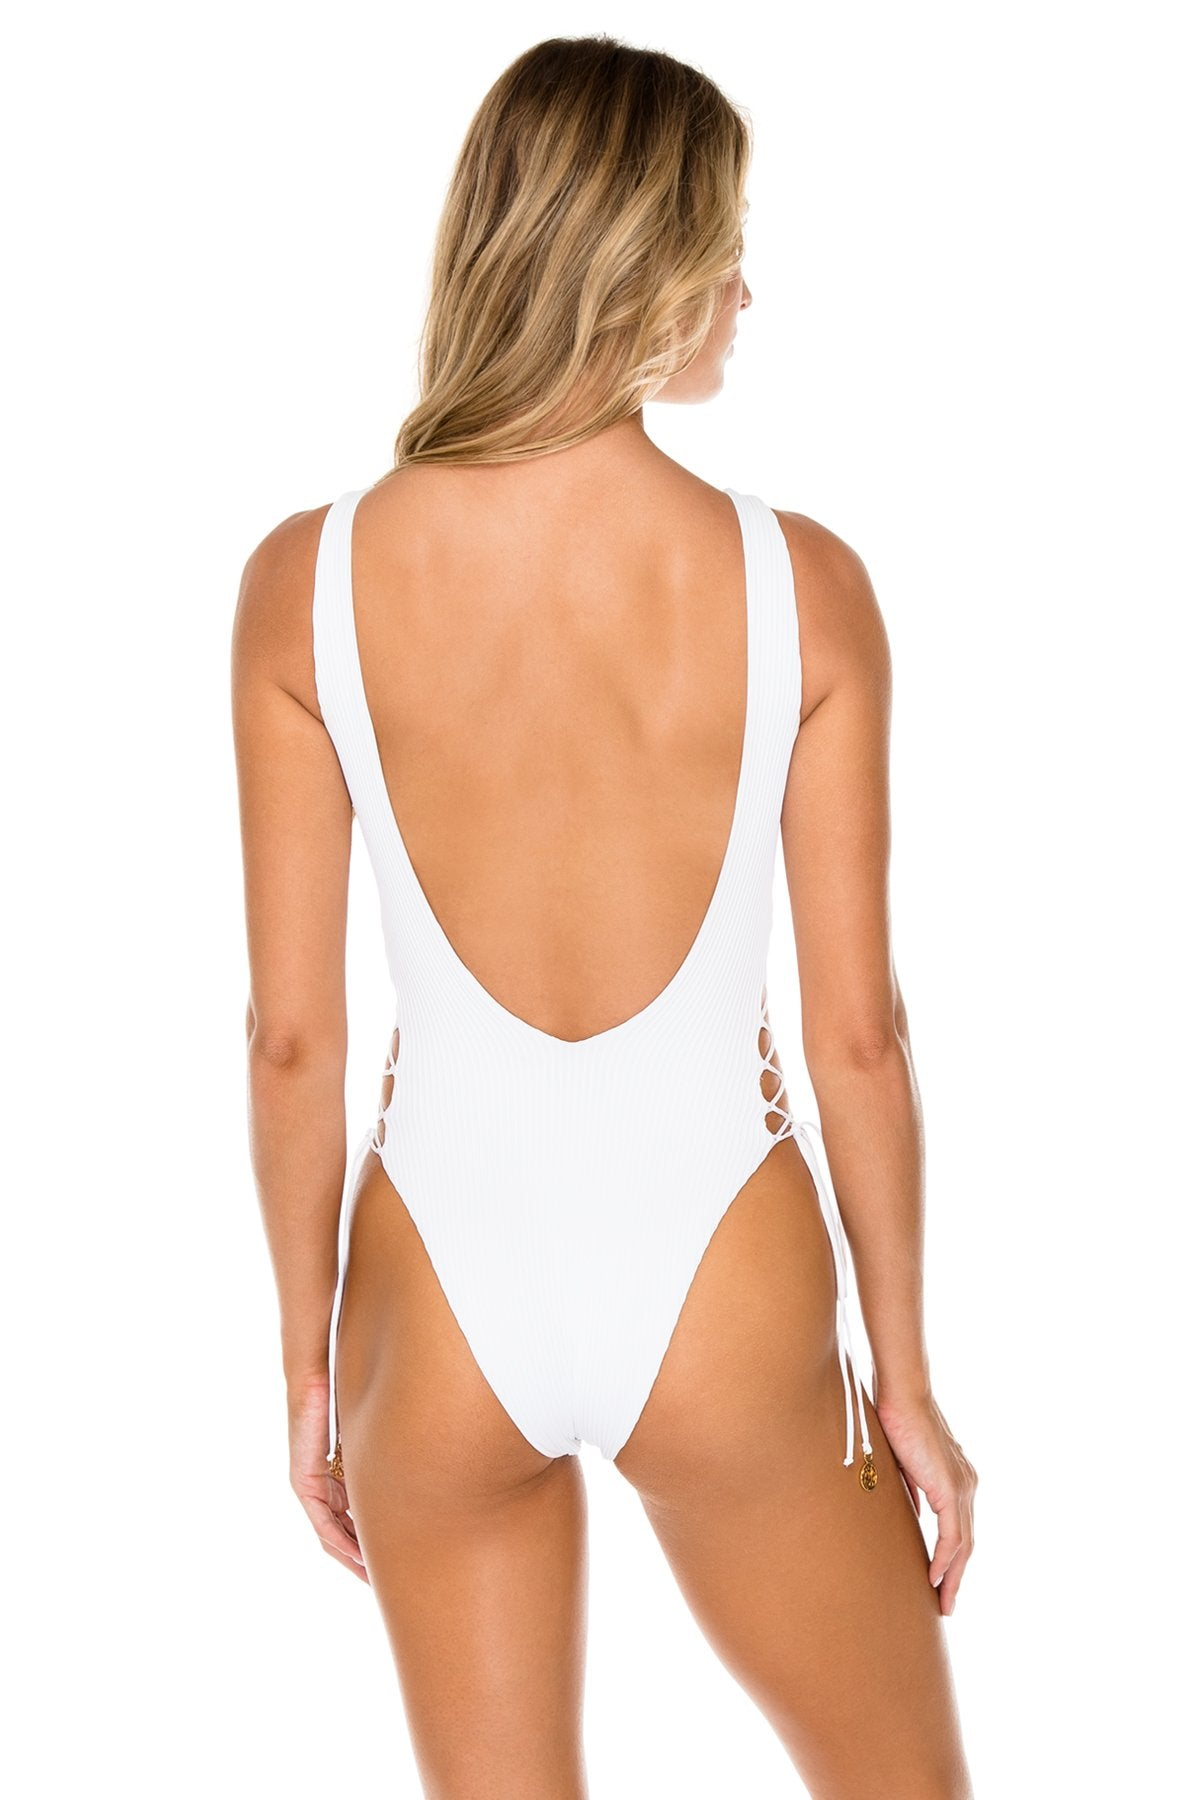 COSTA DEL SOL - Open Side One Piece Bodysuit • White